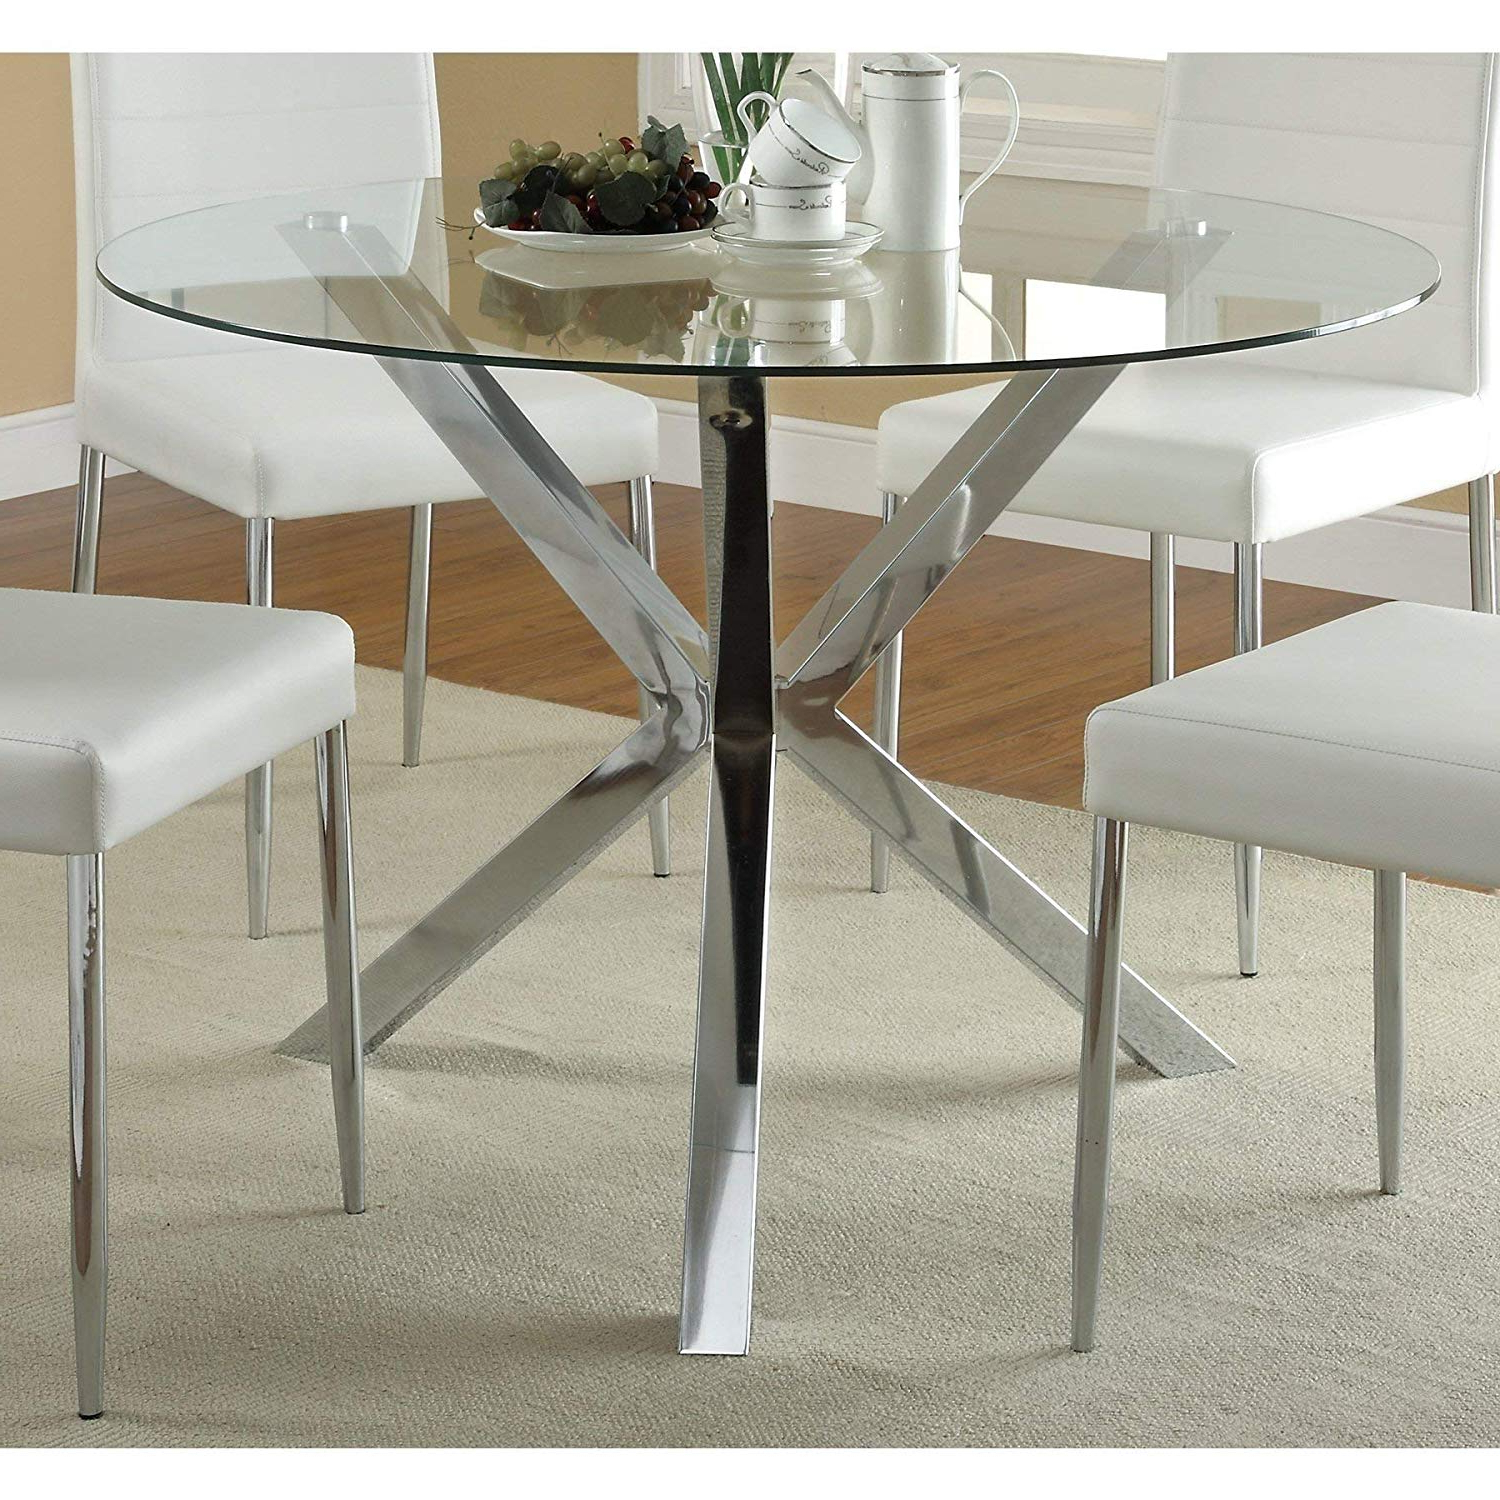 Widely Used Round Dining Tables With Glass Top For Amazon – Contemporary Glass Top Round Dining Table With (Gallery 3 of 30)